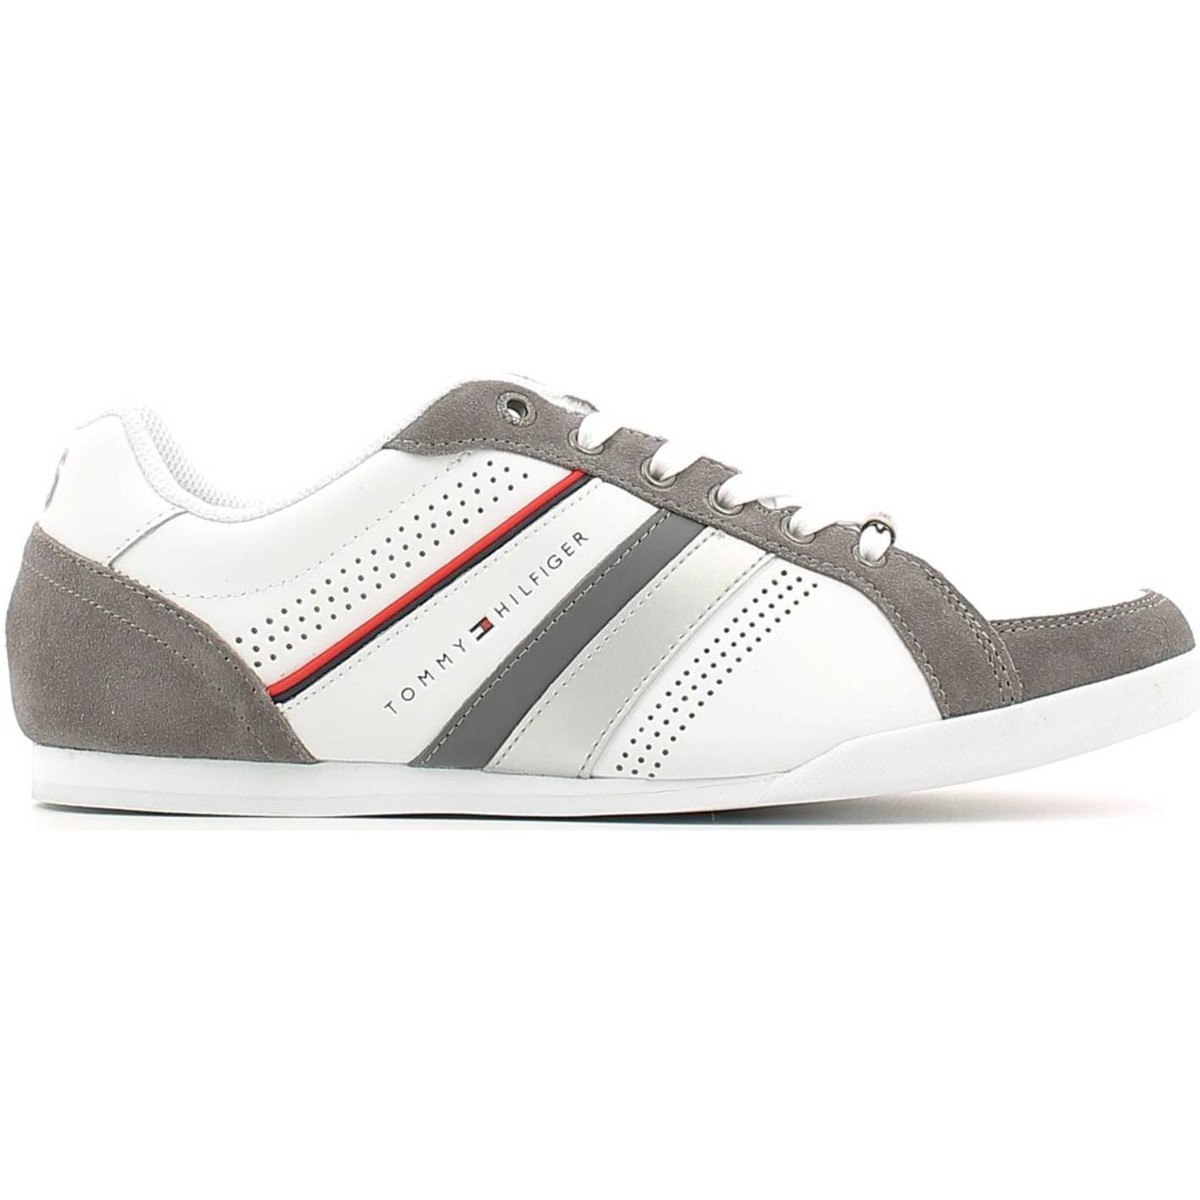 TOMMY HILFIGER SNEAKERS FOR MEN men trainers tommy hilfiger fm56821104 sneakers man bianco,tommy hilfiger  sale,tommy hilfiger on sale,coupon codes VIEPWLG